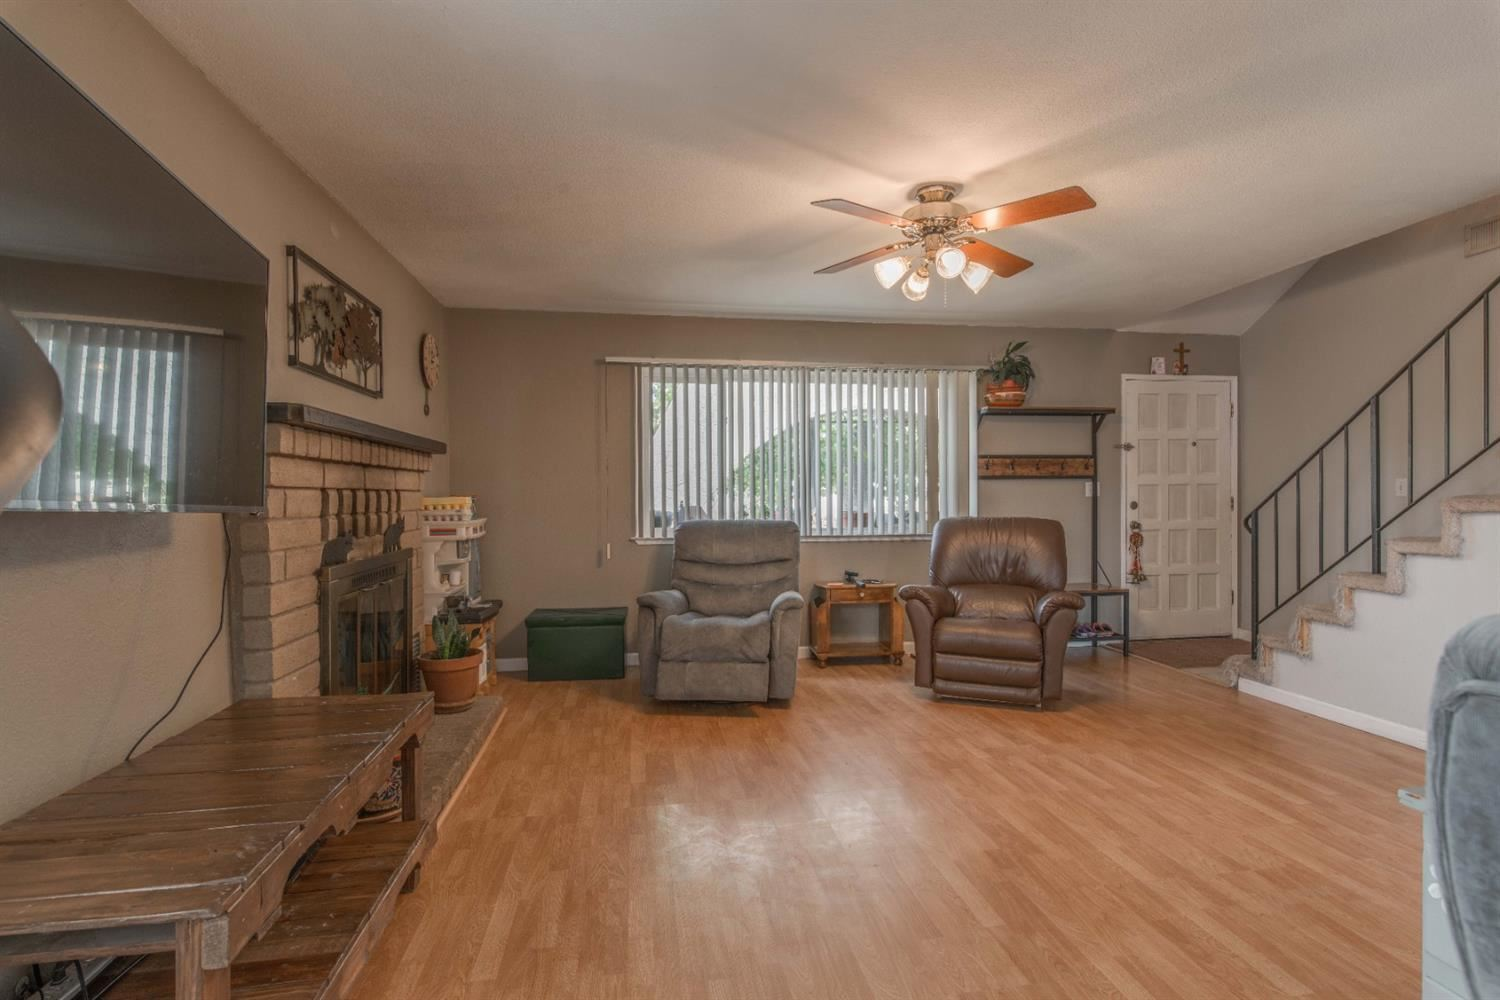 Photo of 7500 Daly Avenue, Citrus Heights, CA 95621 (MLS # 221116992)